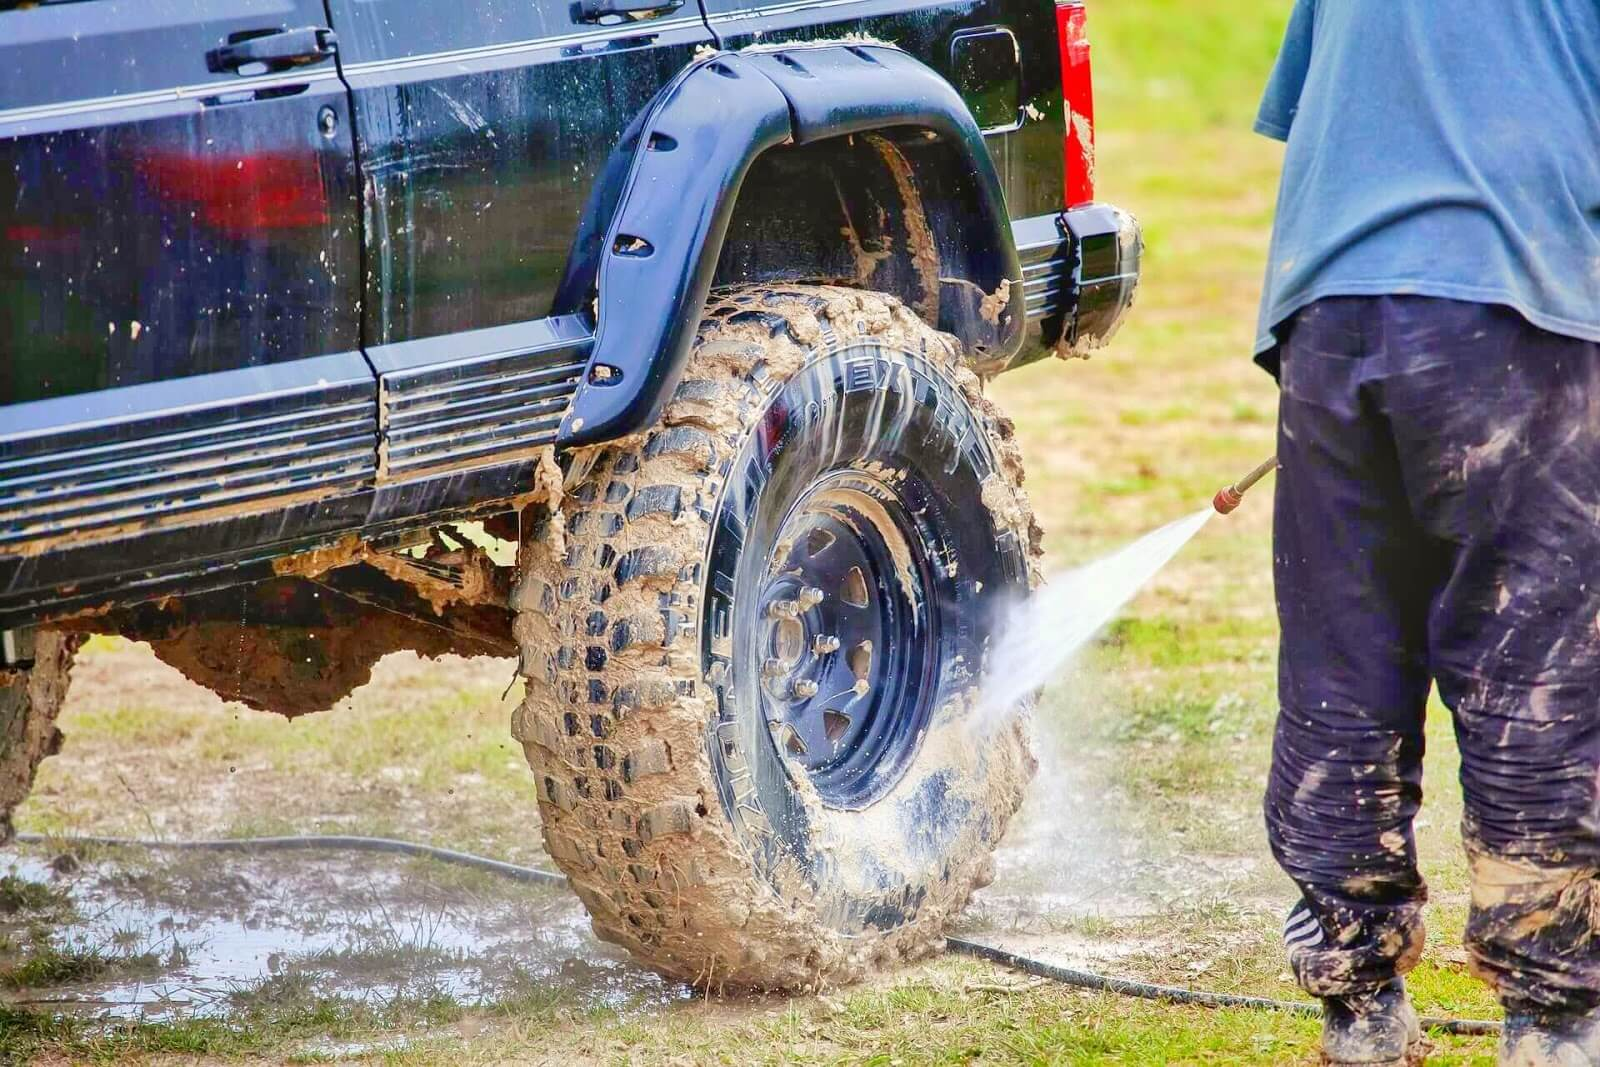 How to clean a jeep after mudding? | step by step jeep cleaning guide